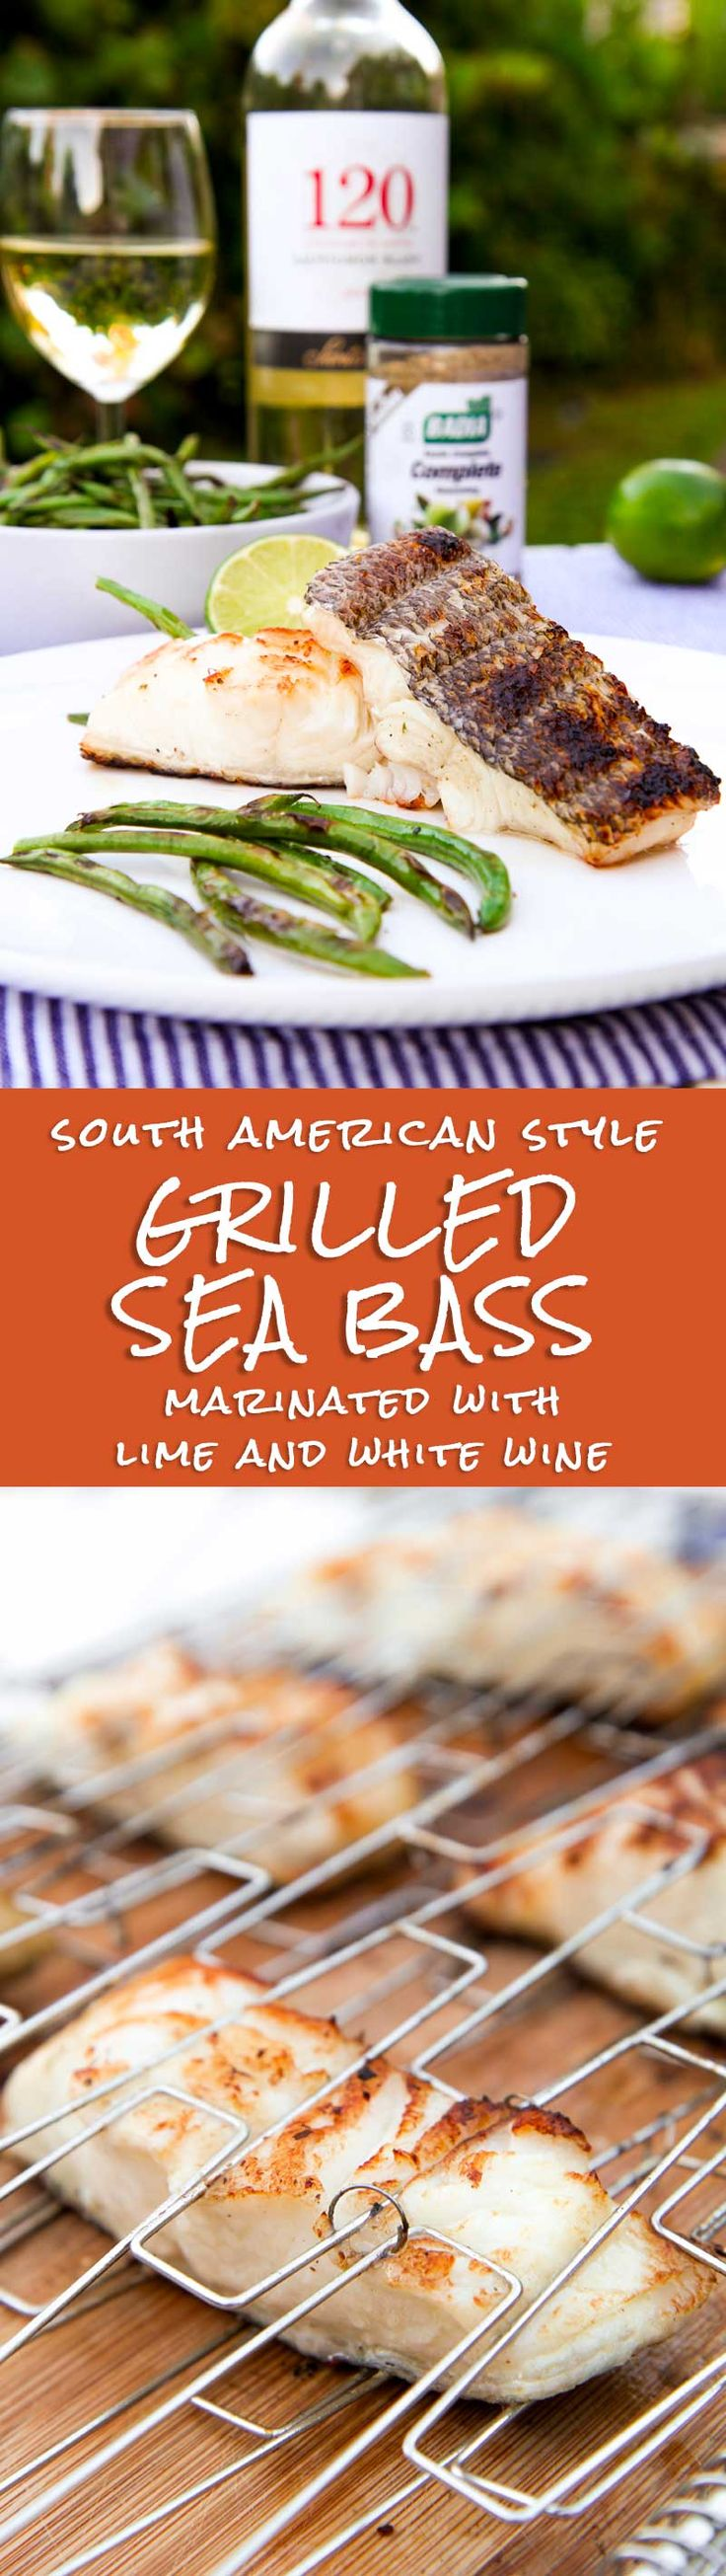 GRILLED SEA BASS marinated with white wine and herbs - This Grilled Sea bass recipe perfectly combines my Italian flair with the flavors of Latin America. Italians love to marinate protein with wine and Chilean sea bass is great with this tasty technique.